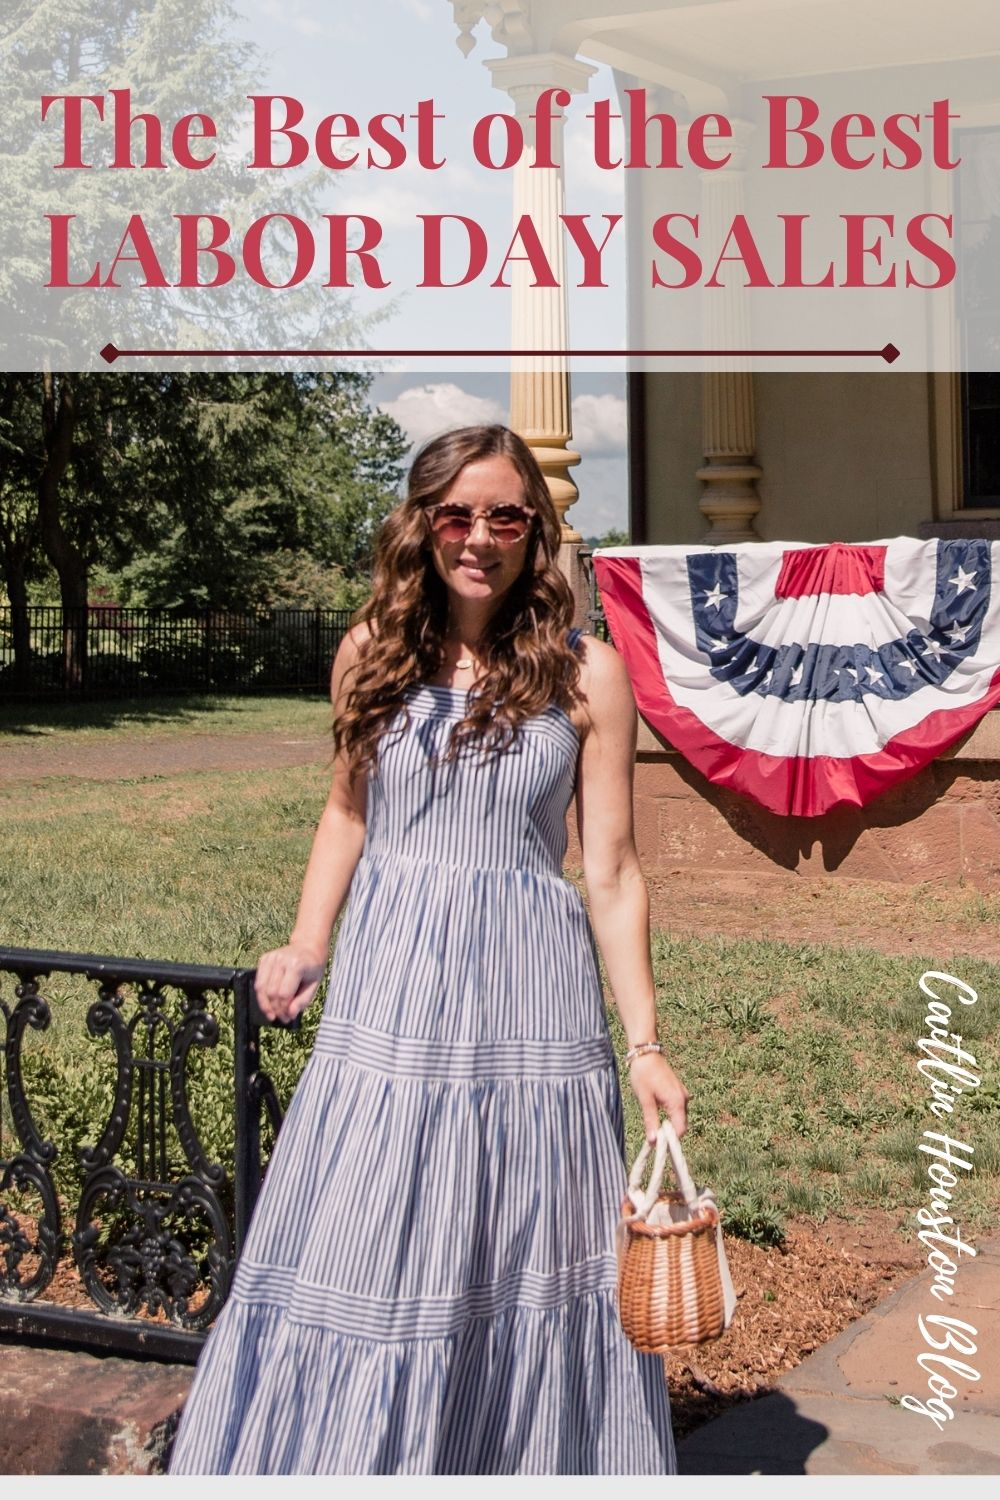 Woman in blue stripe dress for the Best Labor Day Sales